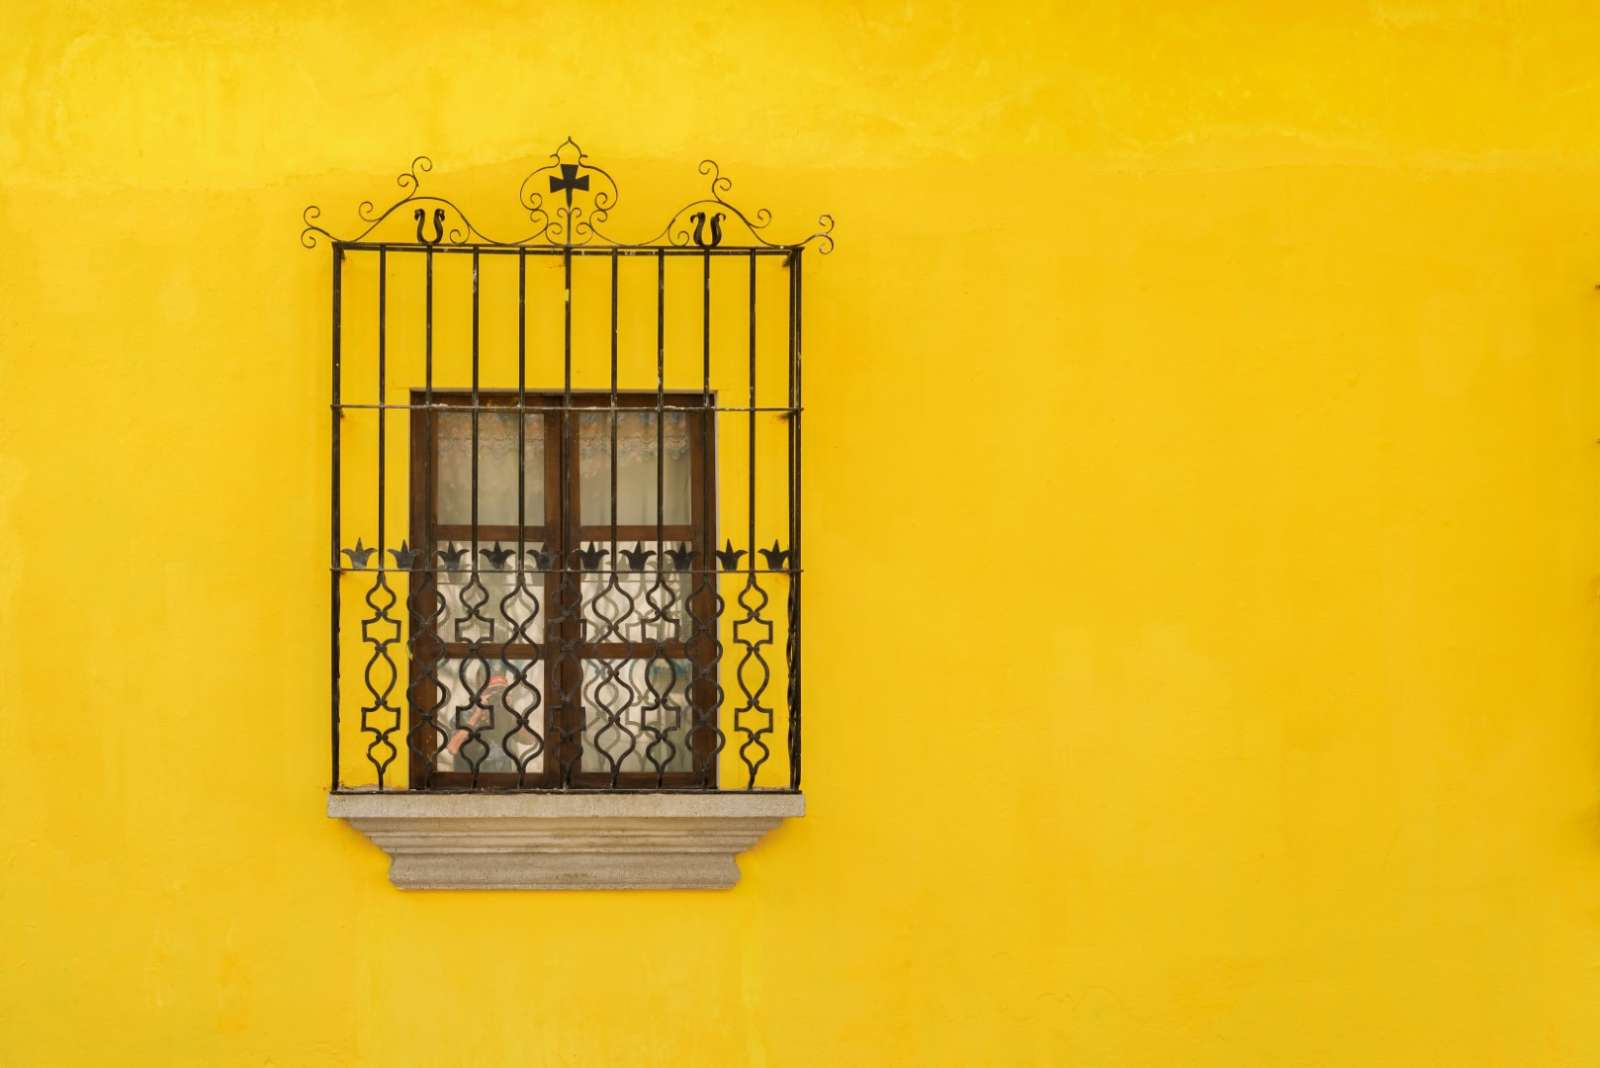 Window on yellow wall in Antigua, Guatemala